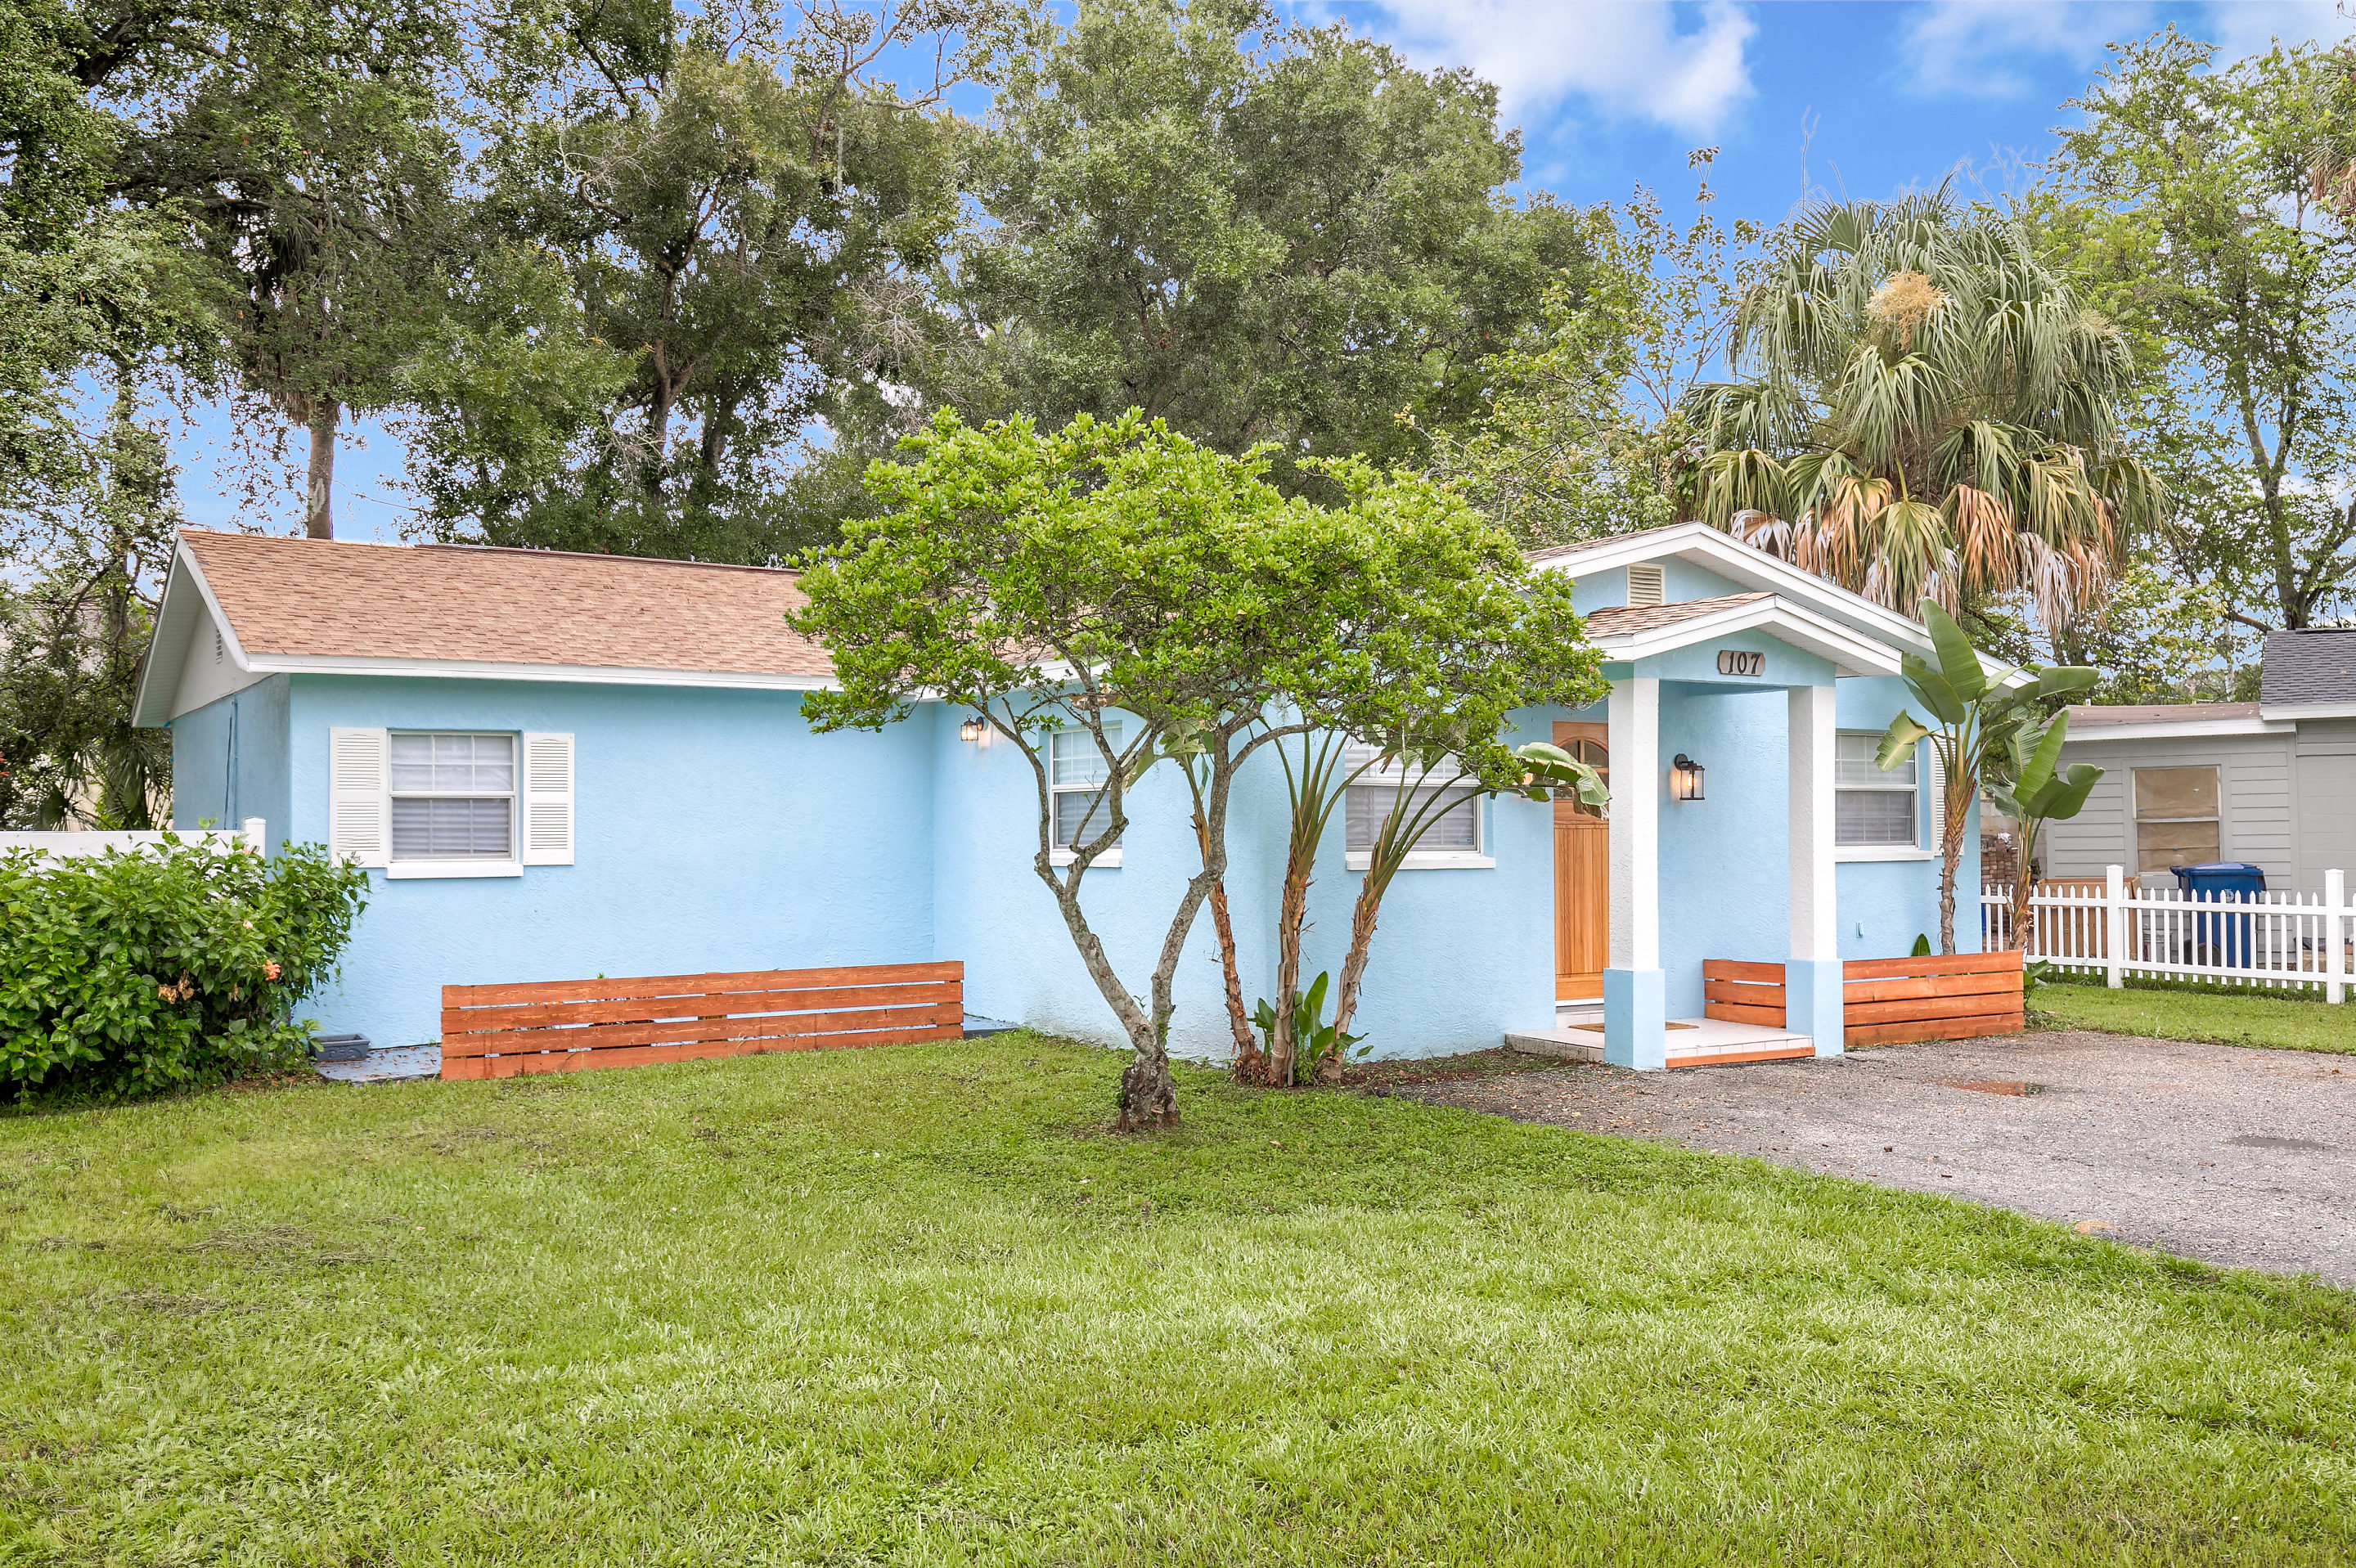 107 S GRADY AVE | SOUTH TAMPA